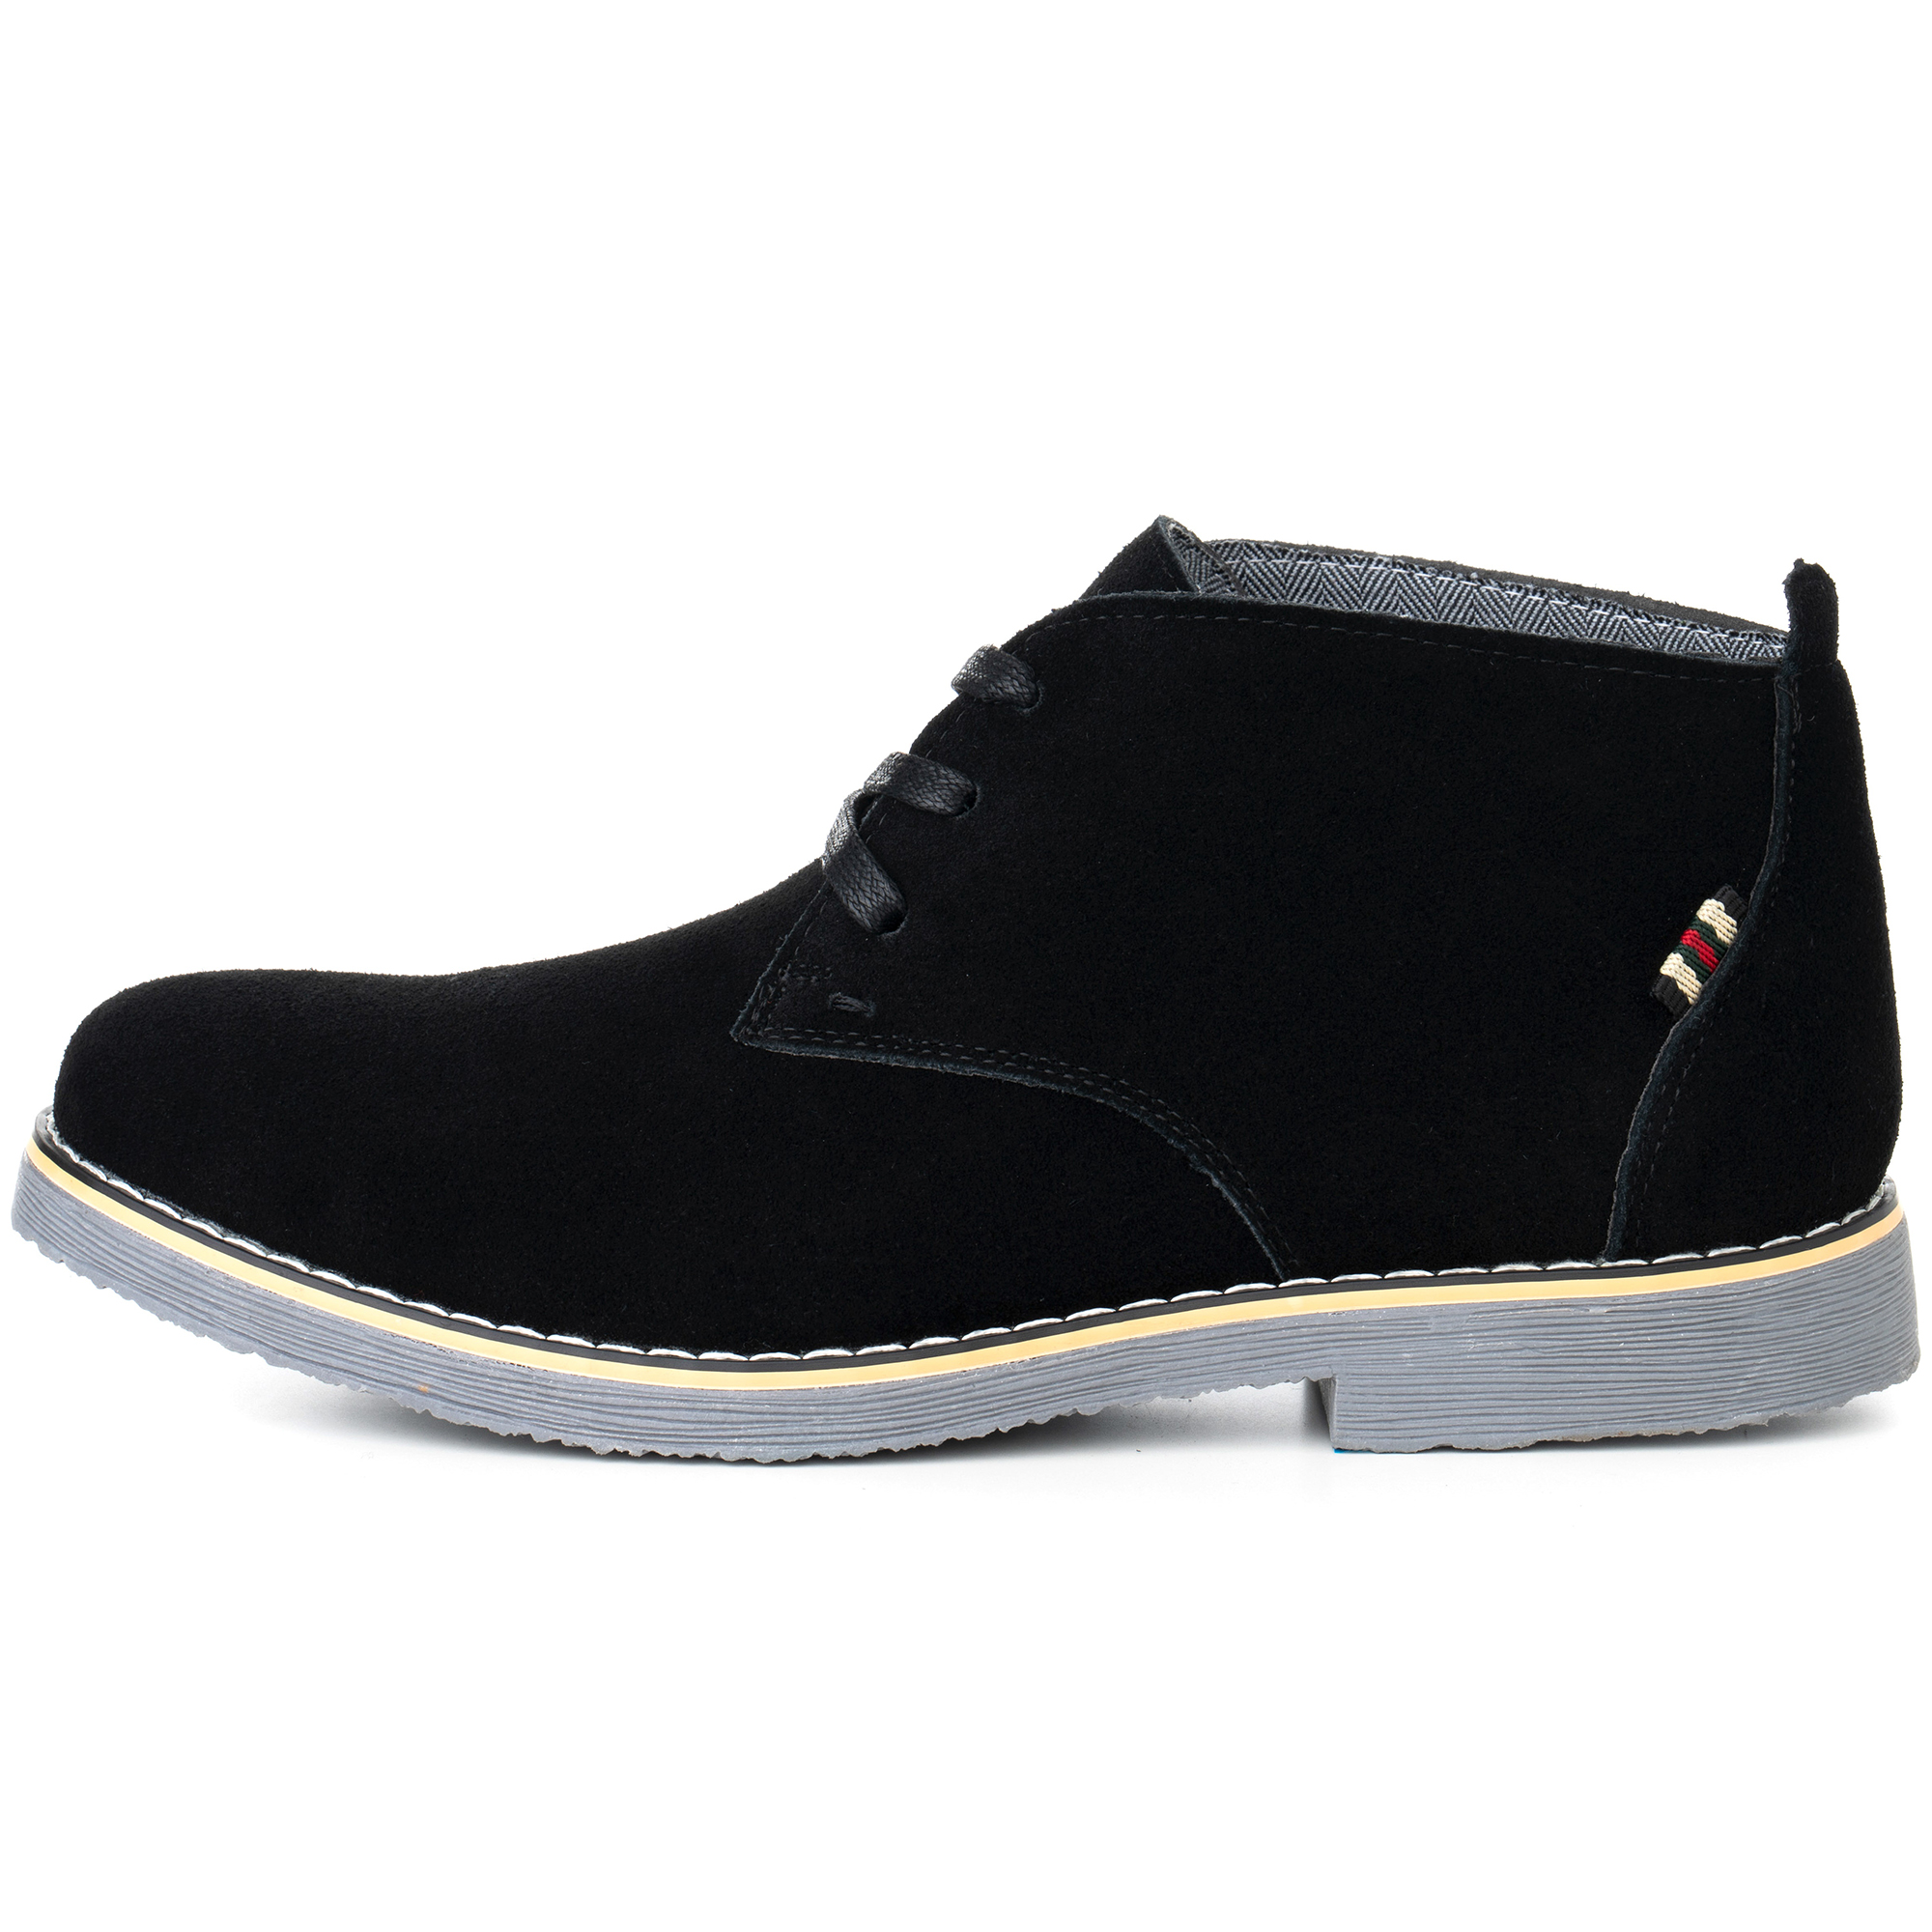 Alpine-Swiss-Beck-Mens-Suede-Chukka-Desert-Boots-Lace-Up-Shoes-Crepe-Sole-Oxford miniature 13